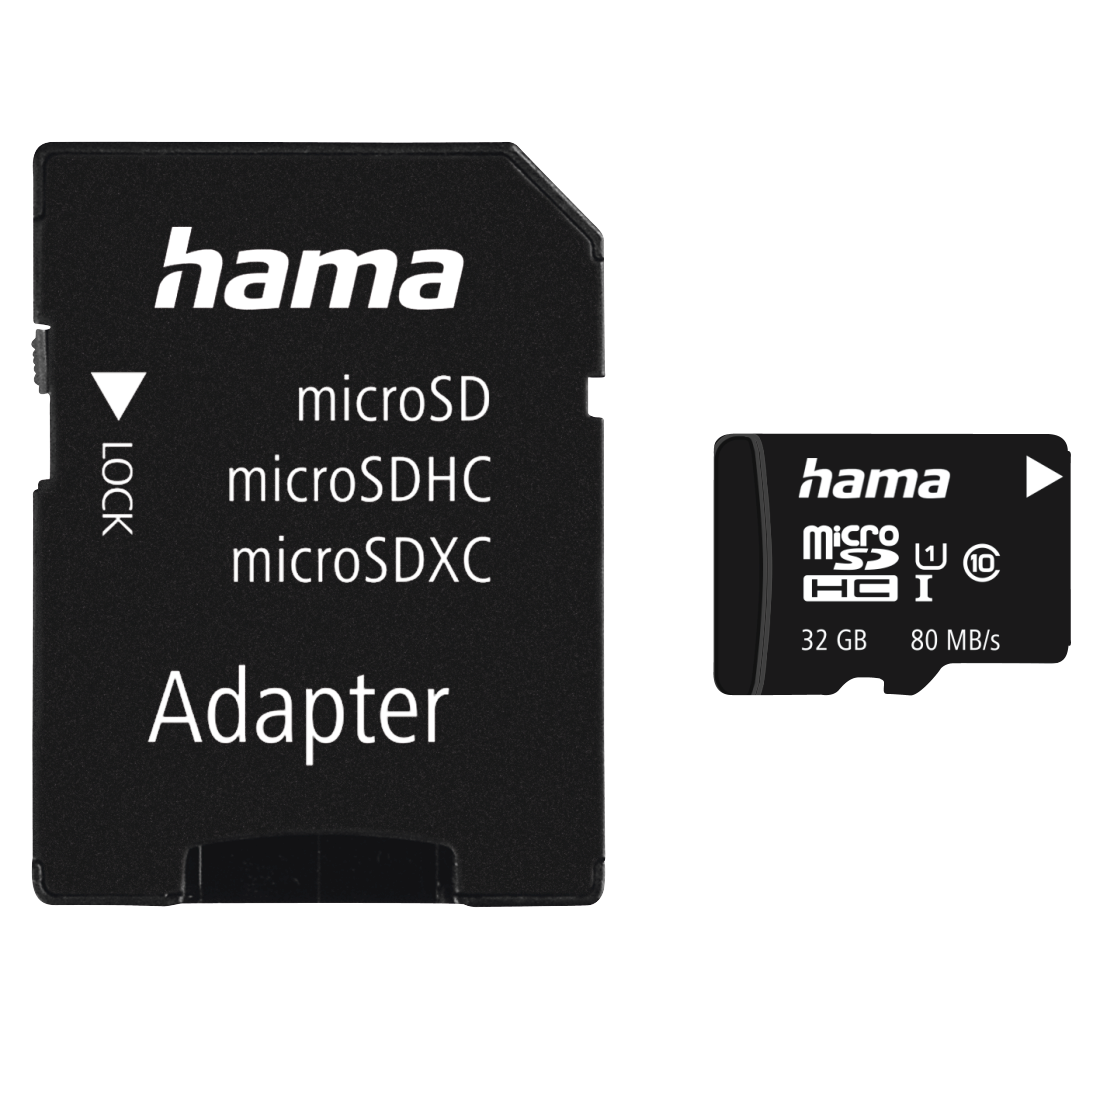 abx High-Res Image - Hama, microSDHC 32GB Class 10 UHS-I 80MB/s + Adapter/Mobile